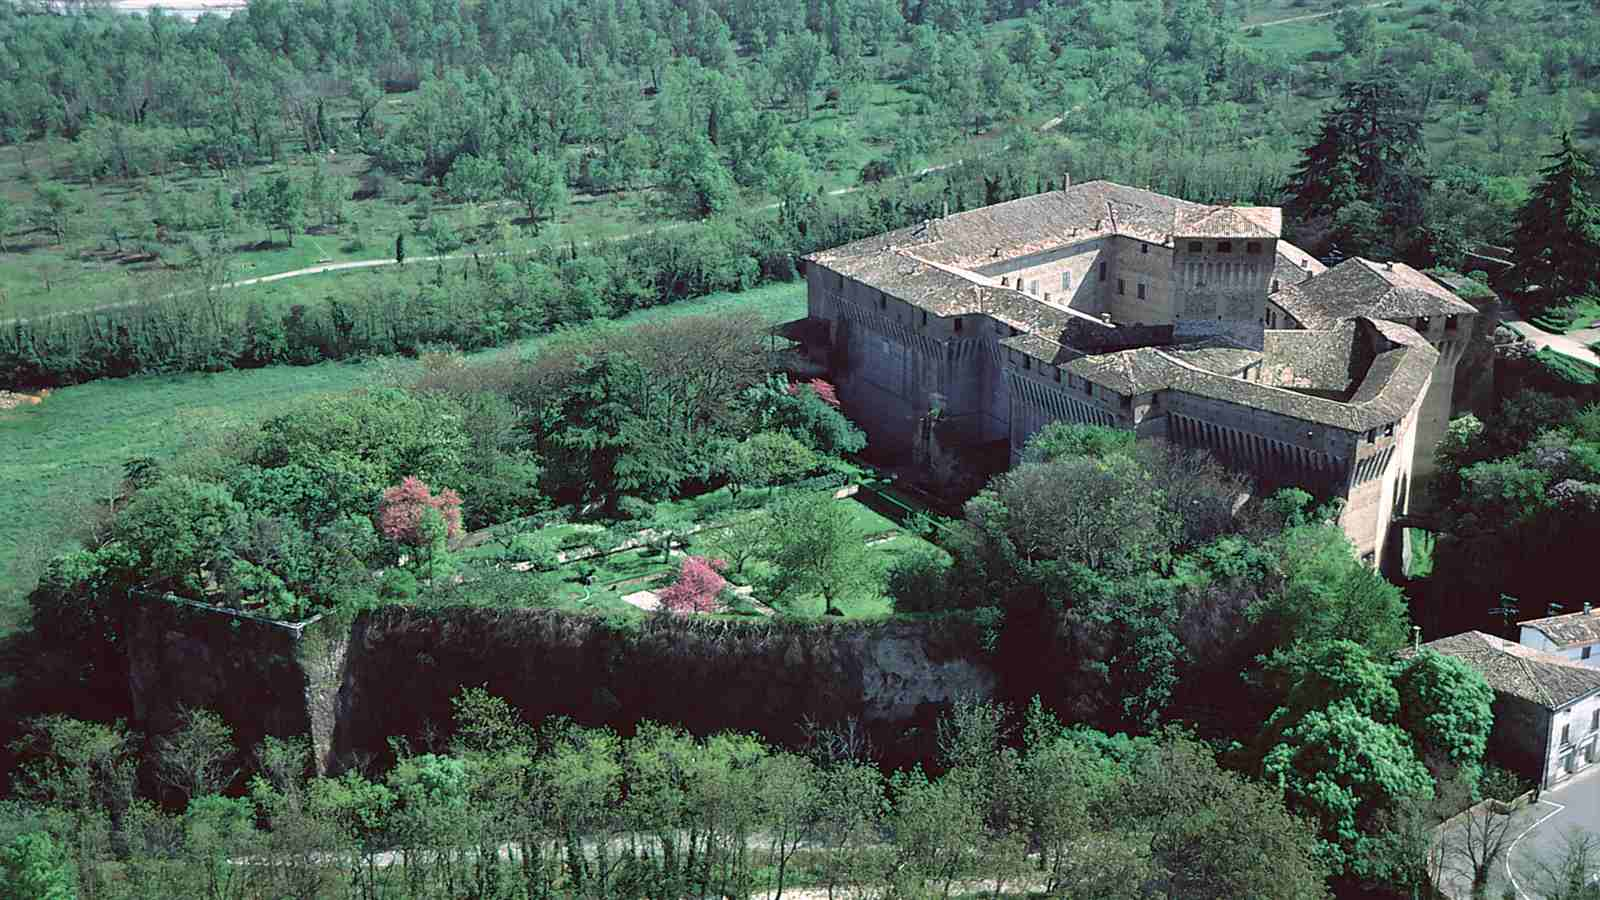 Haunted Castle of Montechiarugolo